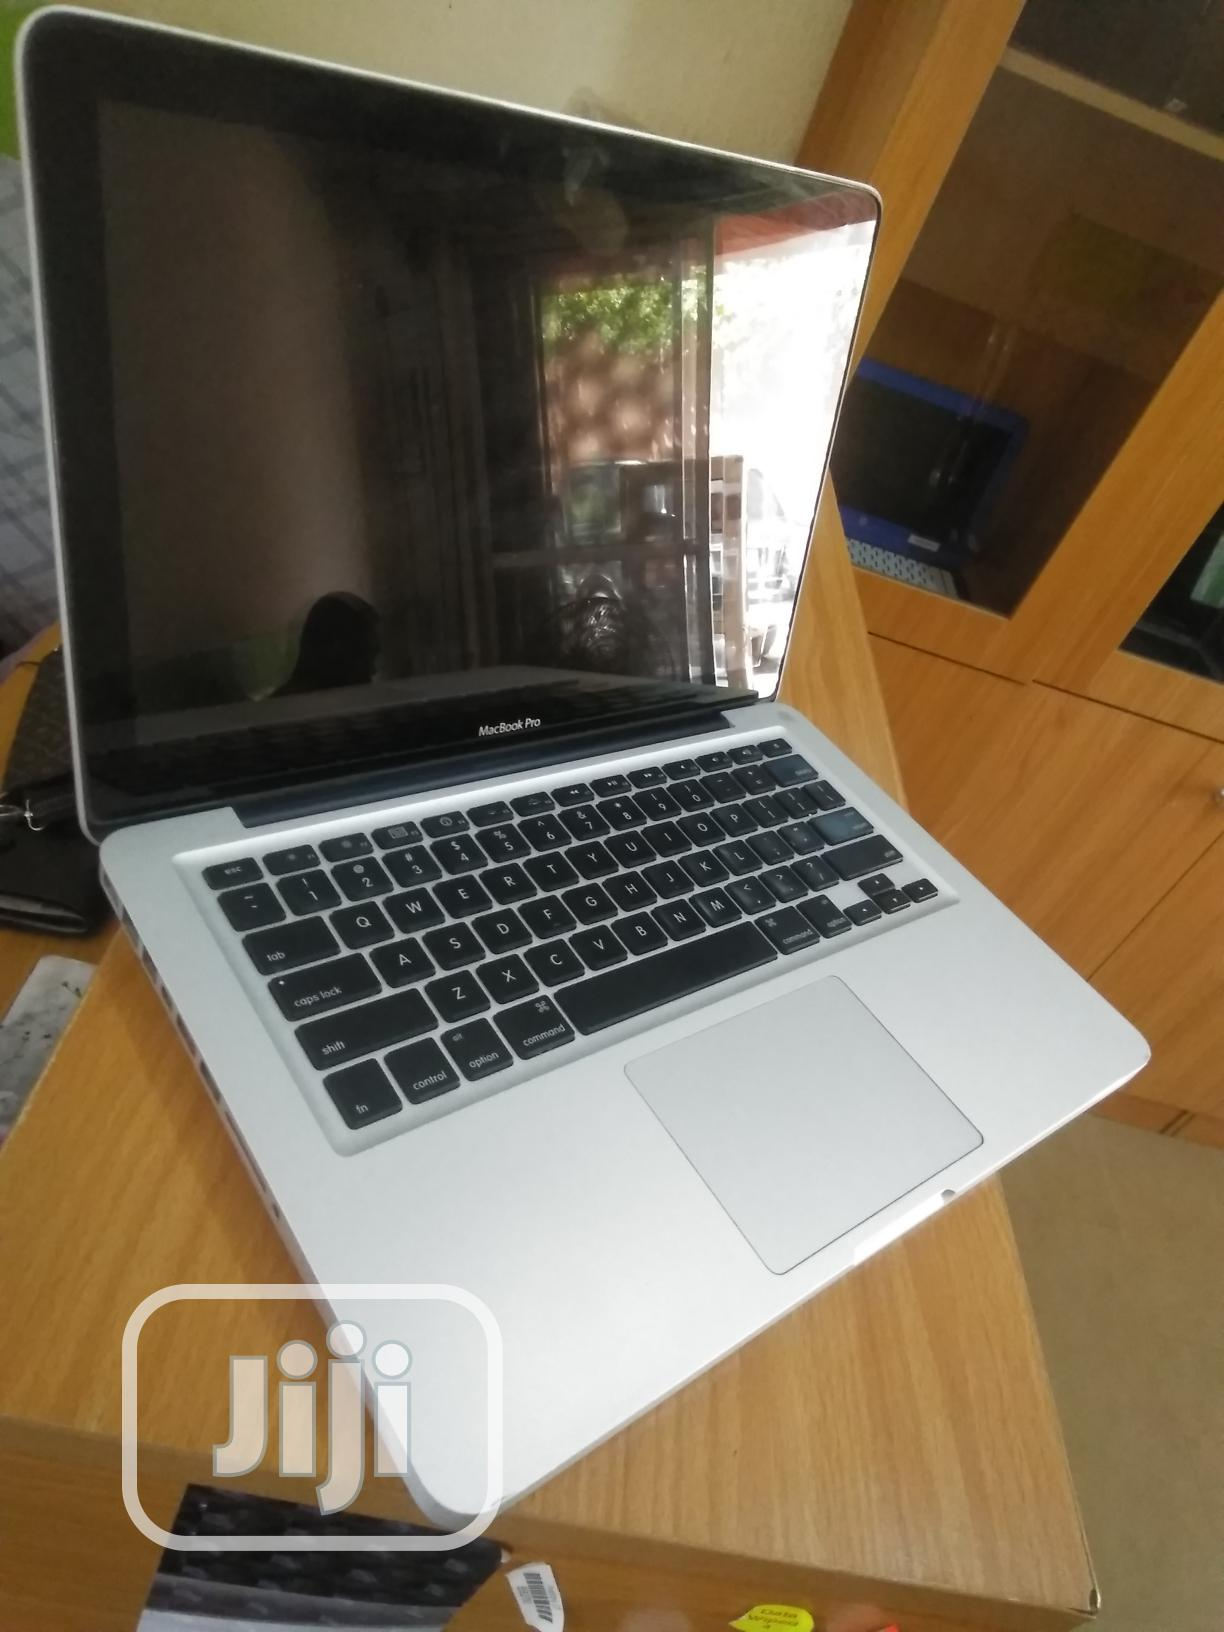 Laptop Apple MacBook Pro 4GB Intel Core I5 HDD 500GB   Laptops & Computers for sale in Maitama, Abuja (FCT) State, Nigeria